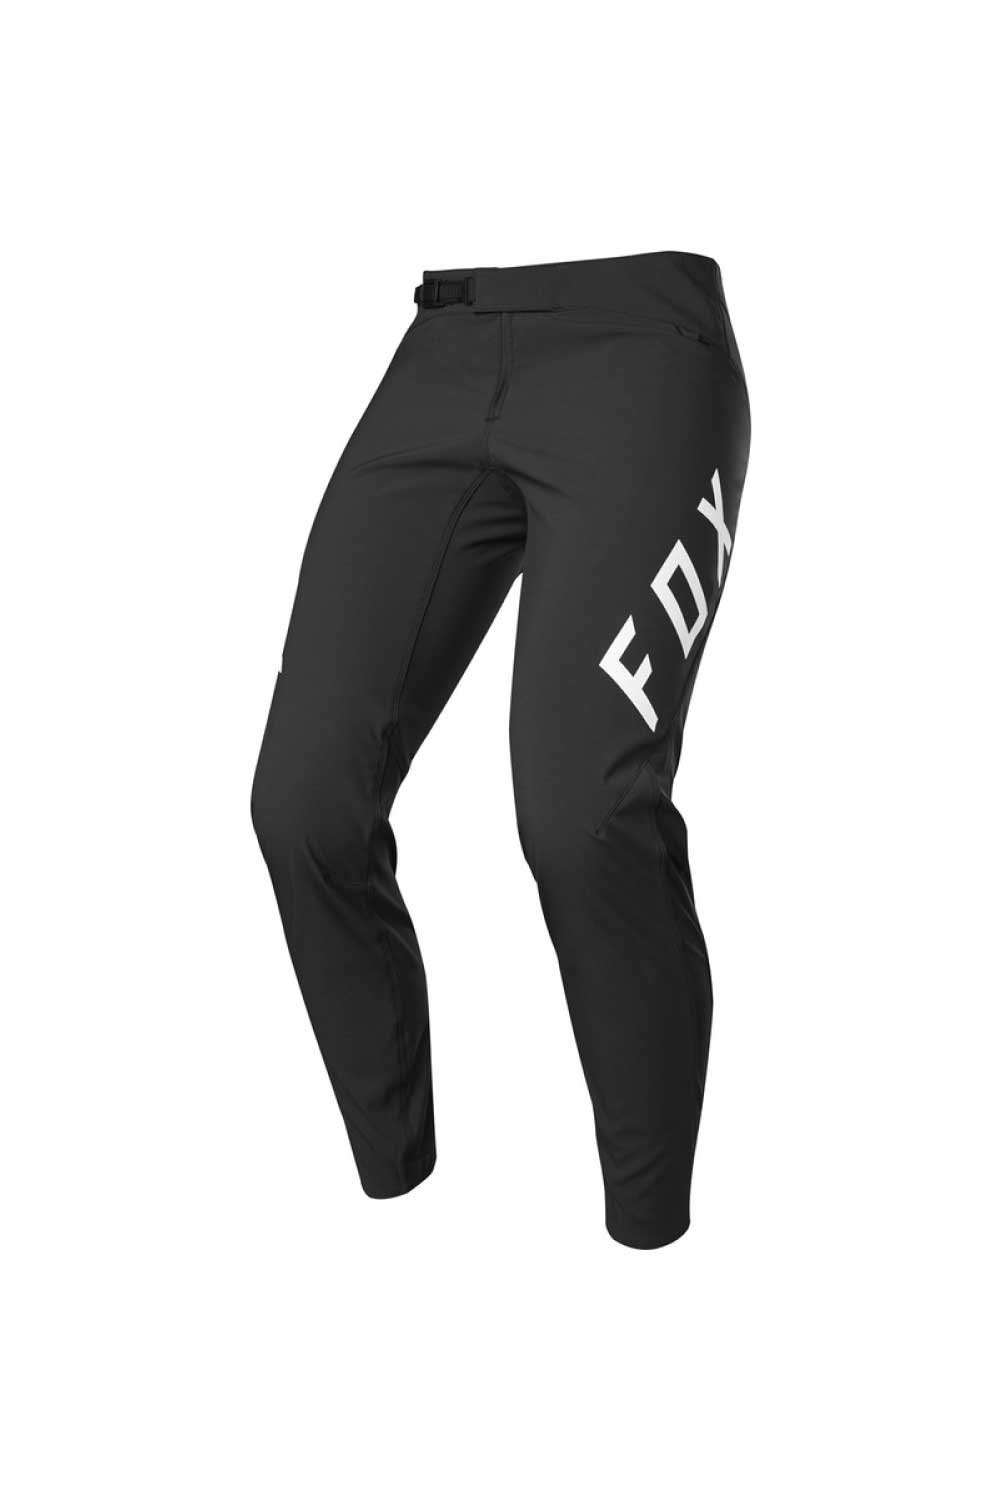 FOX Racing 2020 Men's Defend MTB Bike Pant